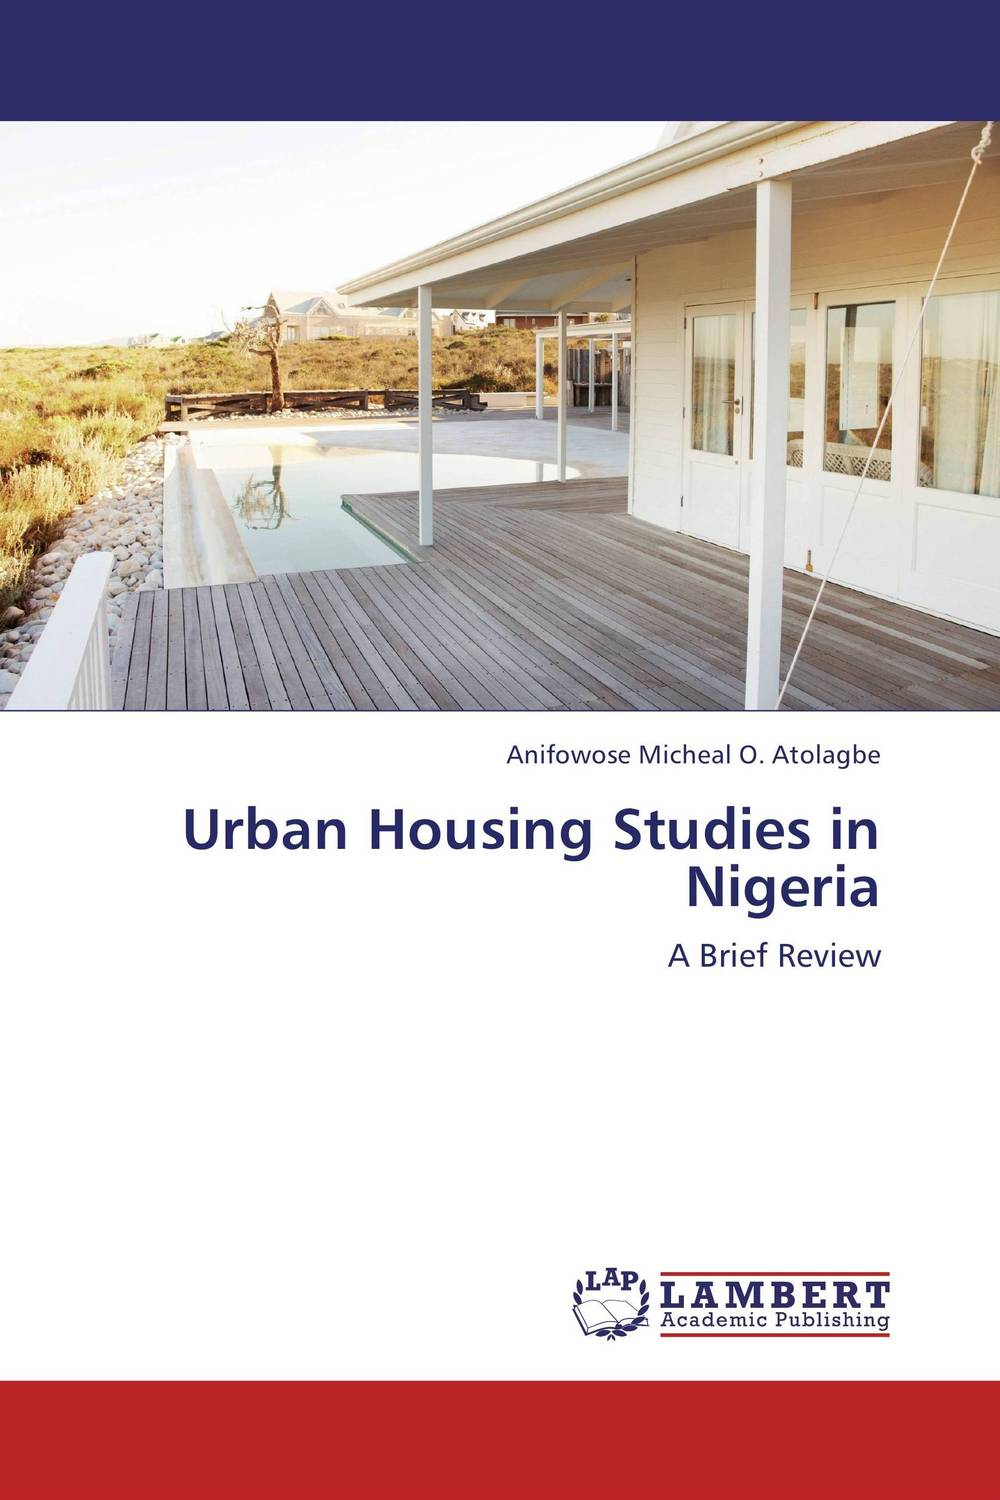 Urban Housing Studies in Nigeria mager genuine new original ssr single phase solid state relay 20a 24vdc dc controlled ac 220vac mgr 1 d4820